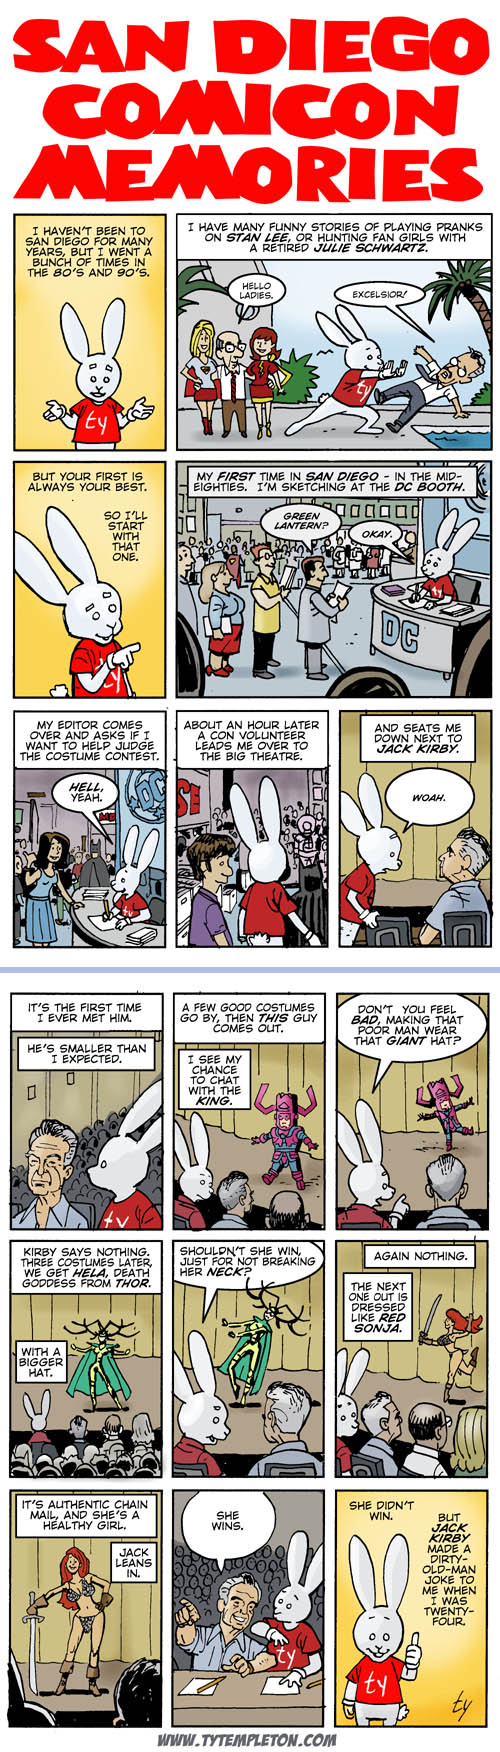 san-diego-memories-websize